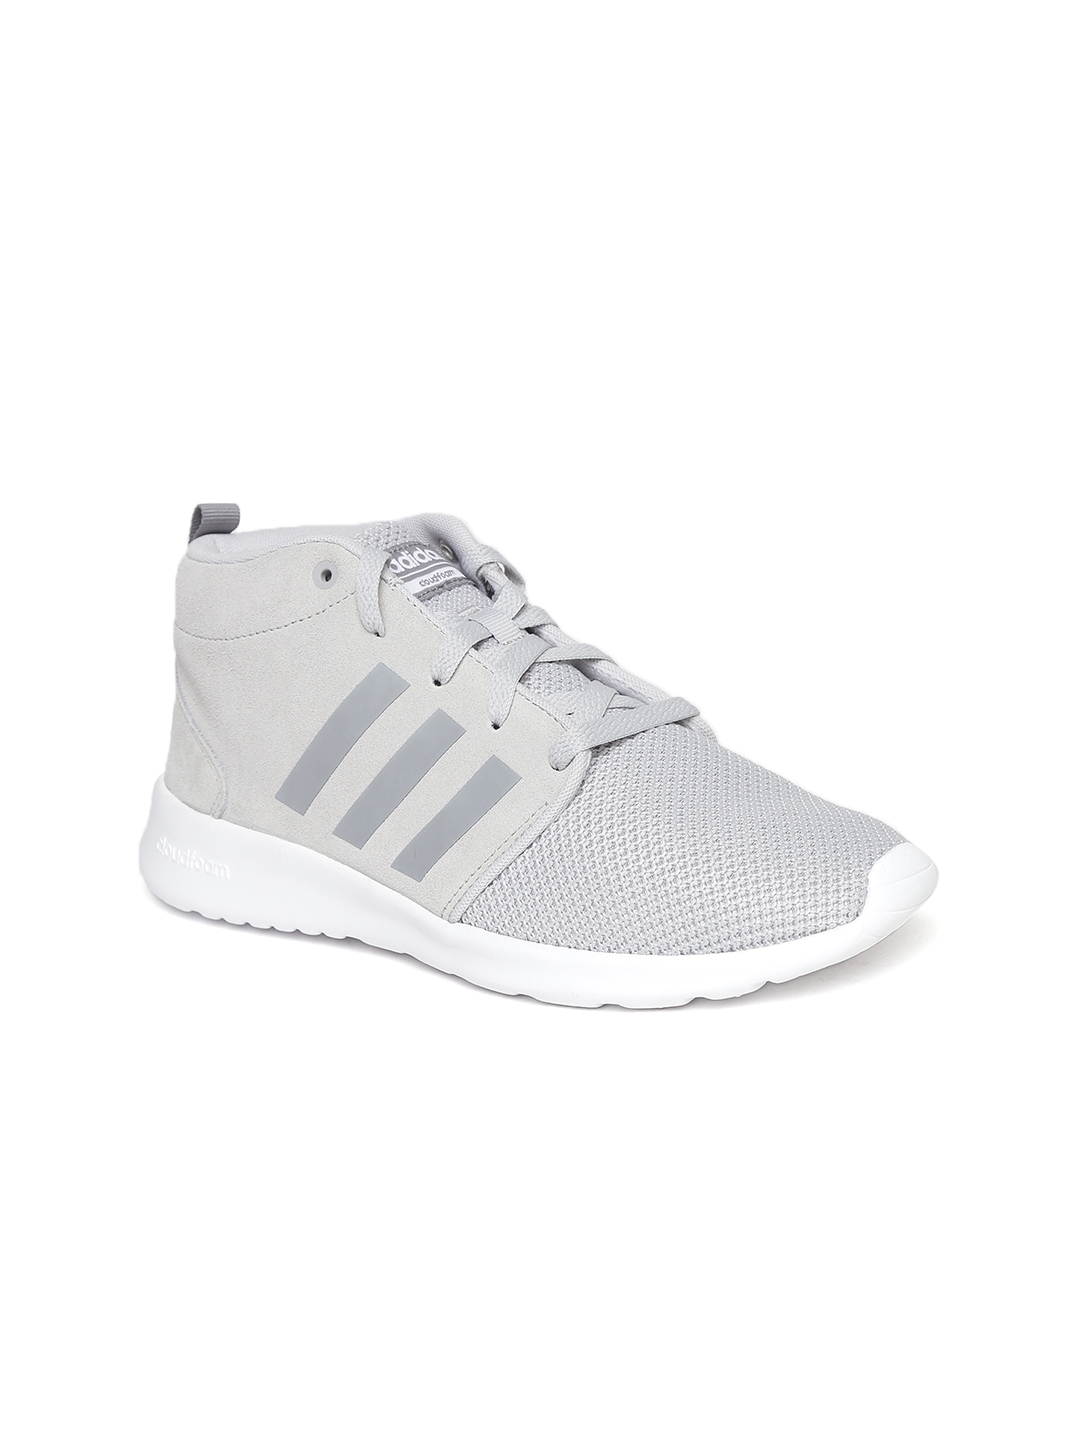 purchase cheap 54d94 161a8 ADIDAS NEO Women Grey CloudFoam QT Racer Suede Sneakers